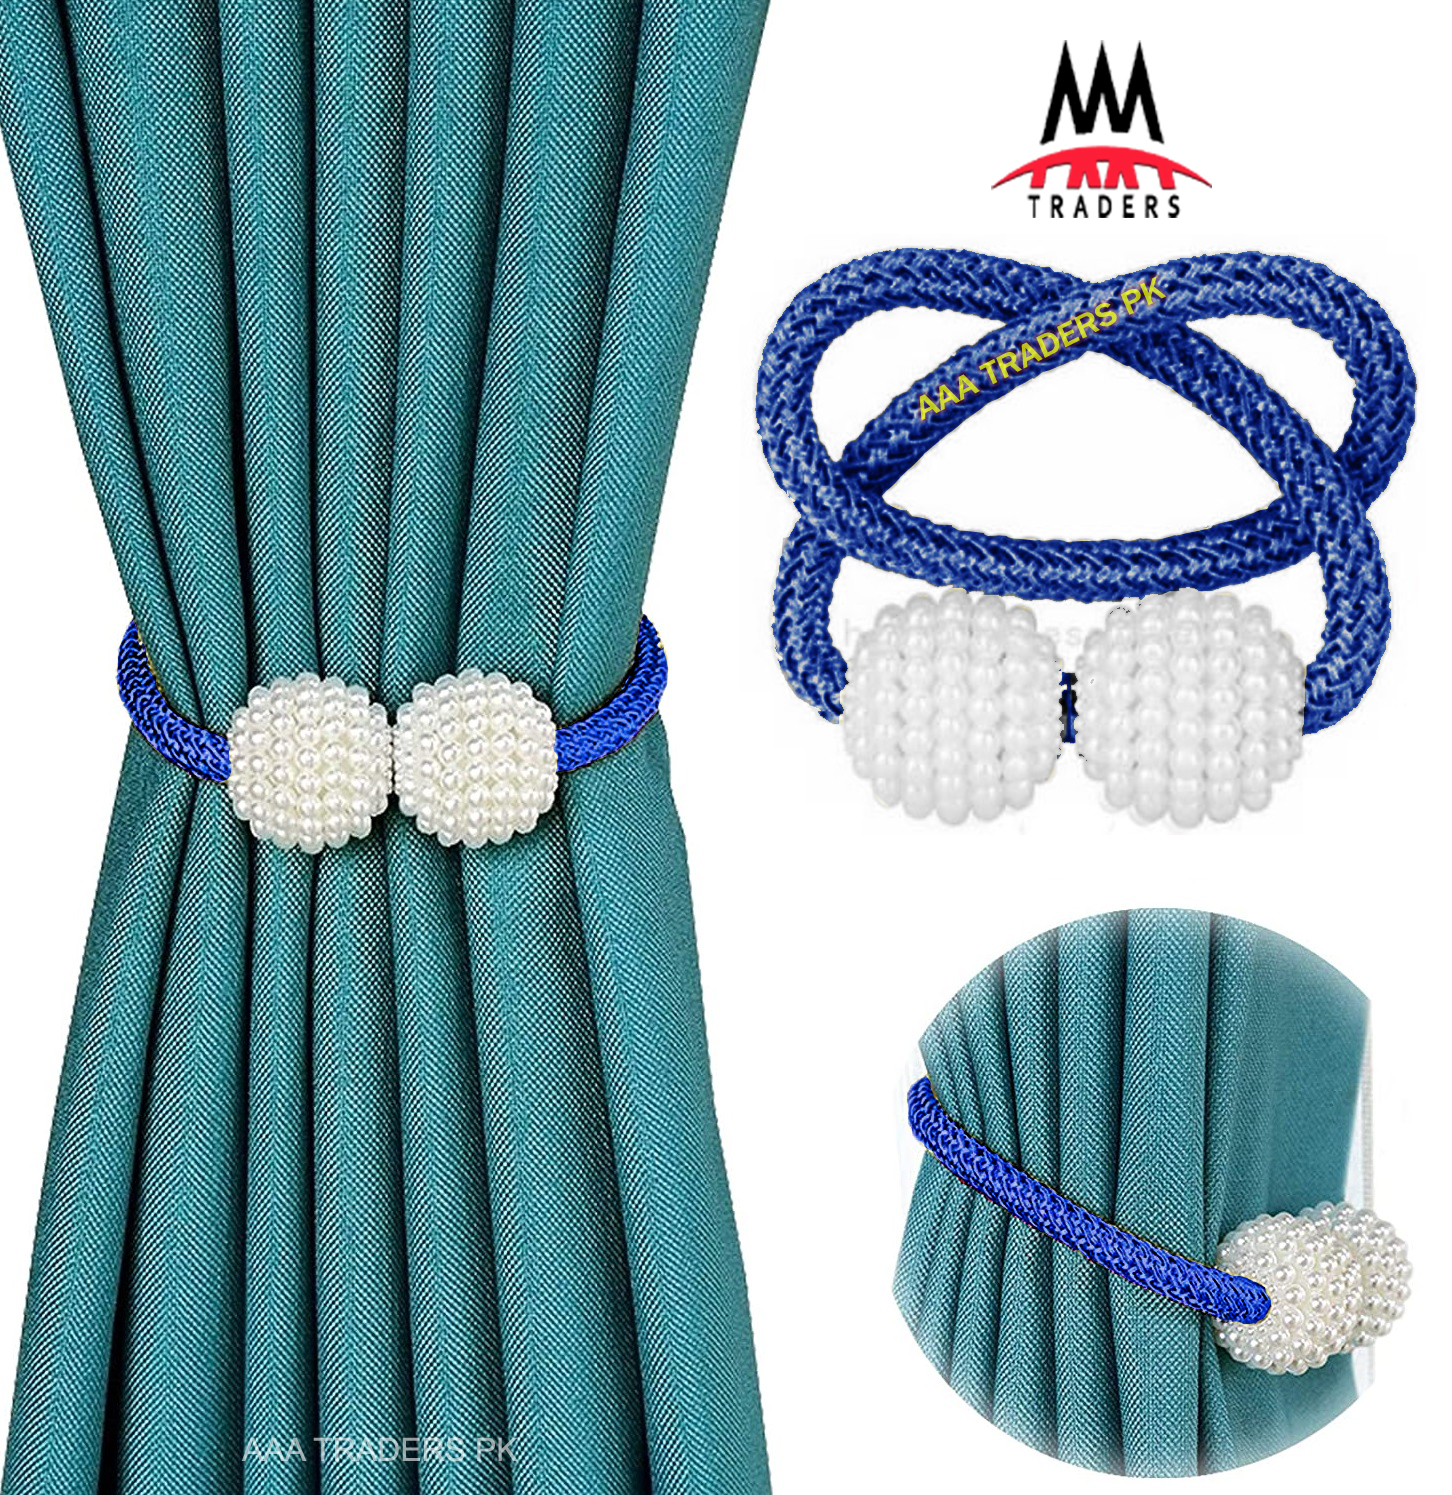 2 PCS Pearl Magnetic Curtain Buckle Magnetic Curtain Tiebacks Convenient Drape Tie European Style Decorative Weave Rope Curtain Rings & Buckles Holder for Window Sheer Blackout Draperies, Parday